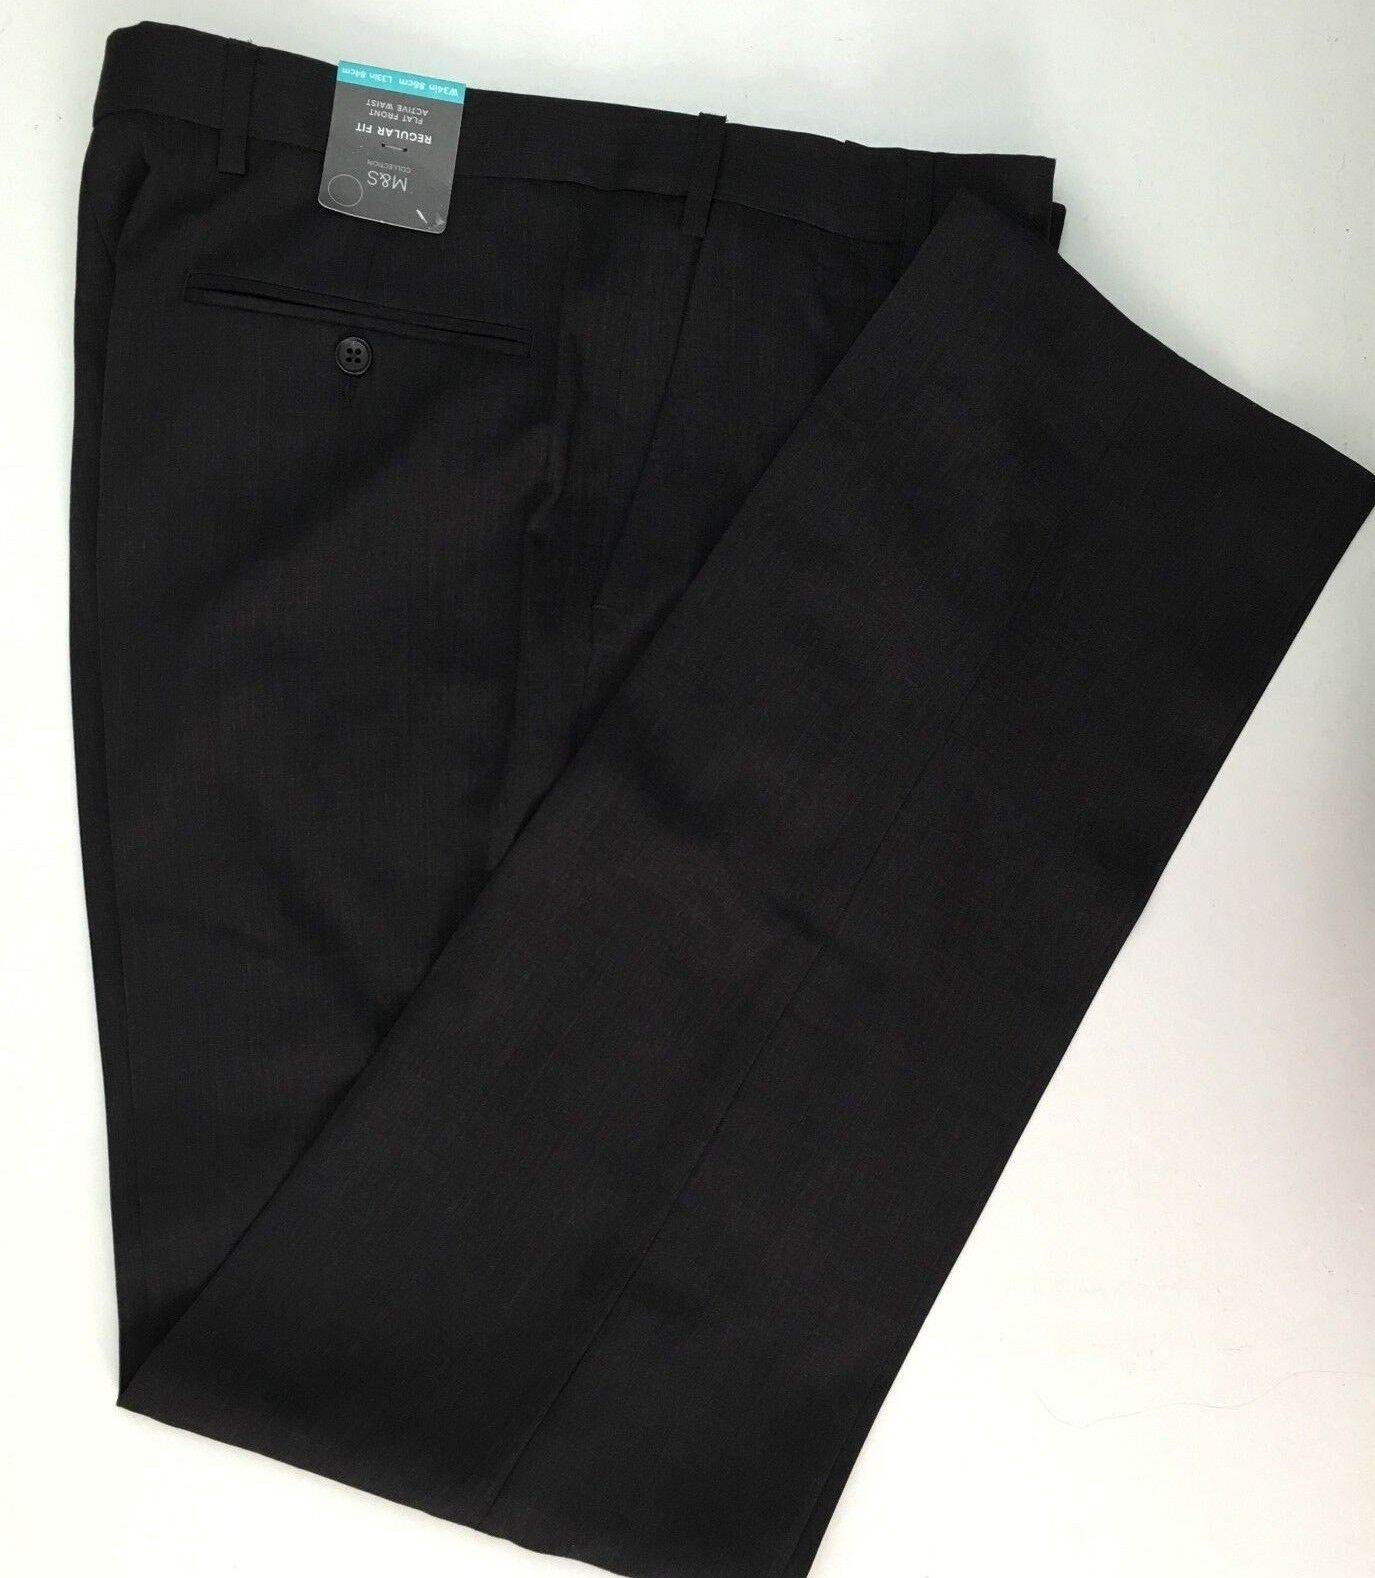 M&S COLLECTION Charcoal Regular Fit Trousers  PRP